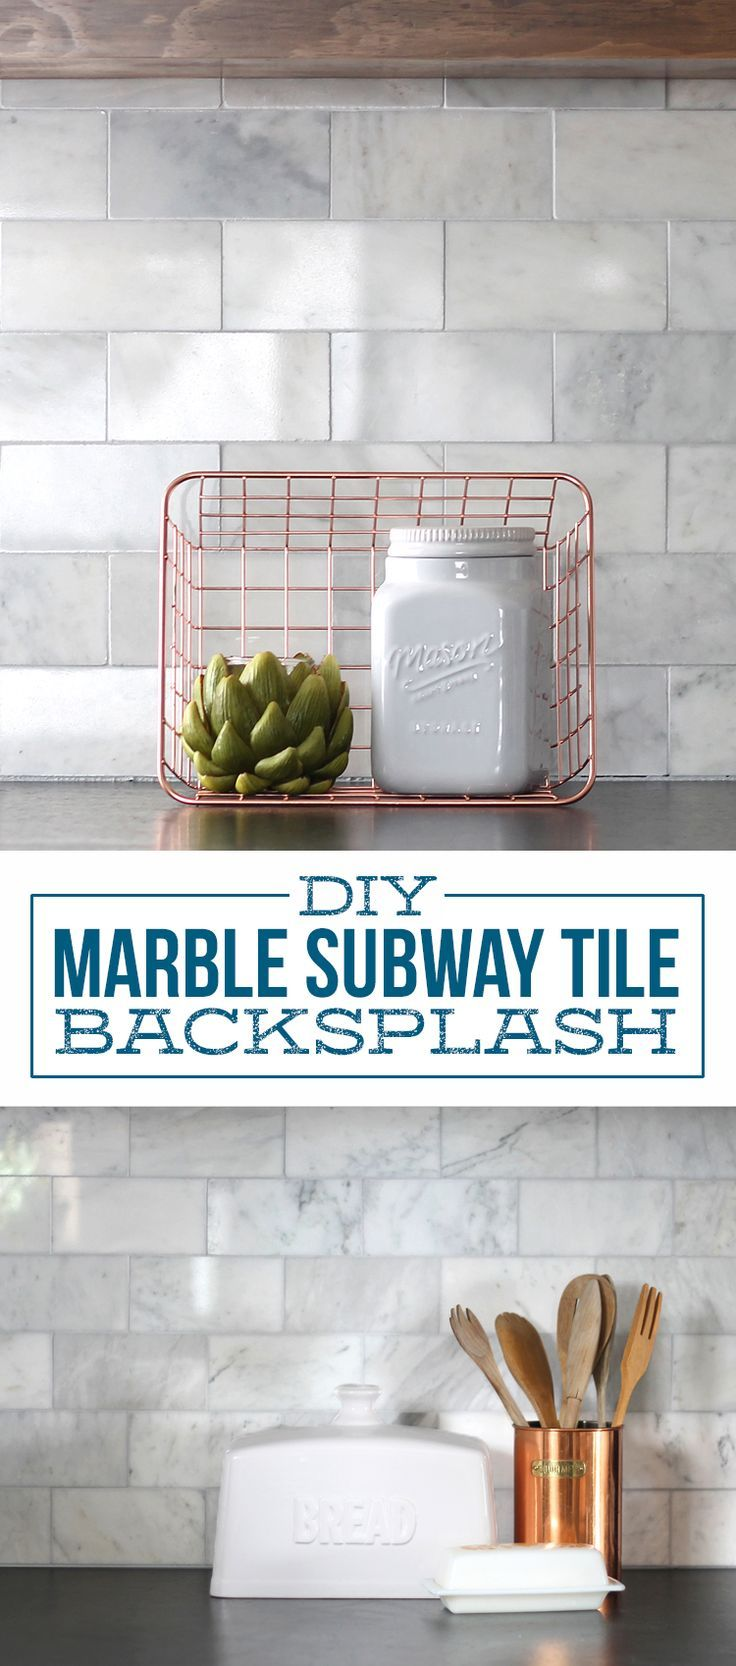 Best 25+ Marble tile backsplash ideas on Pinterest ...